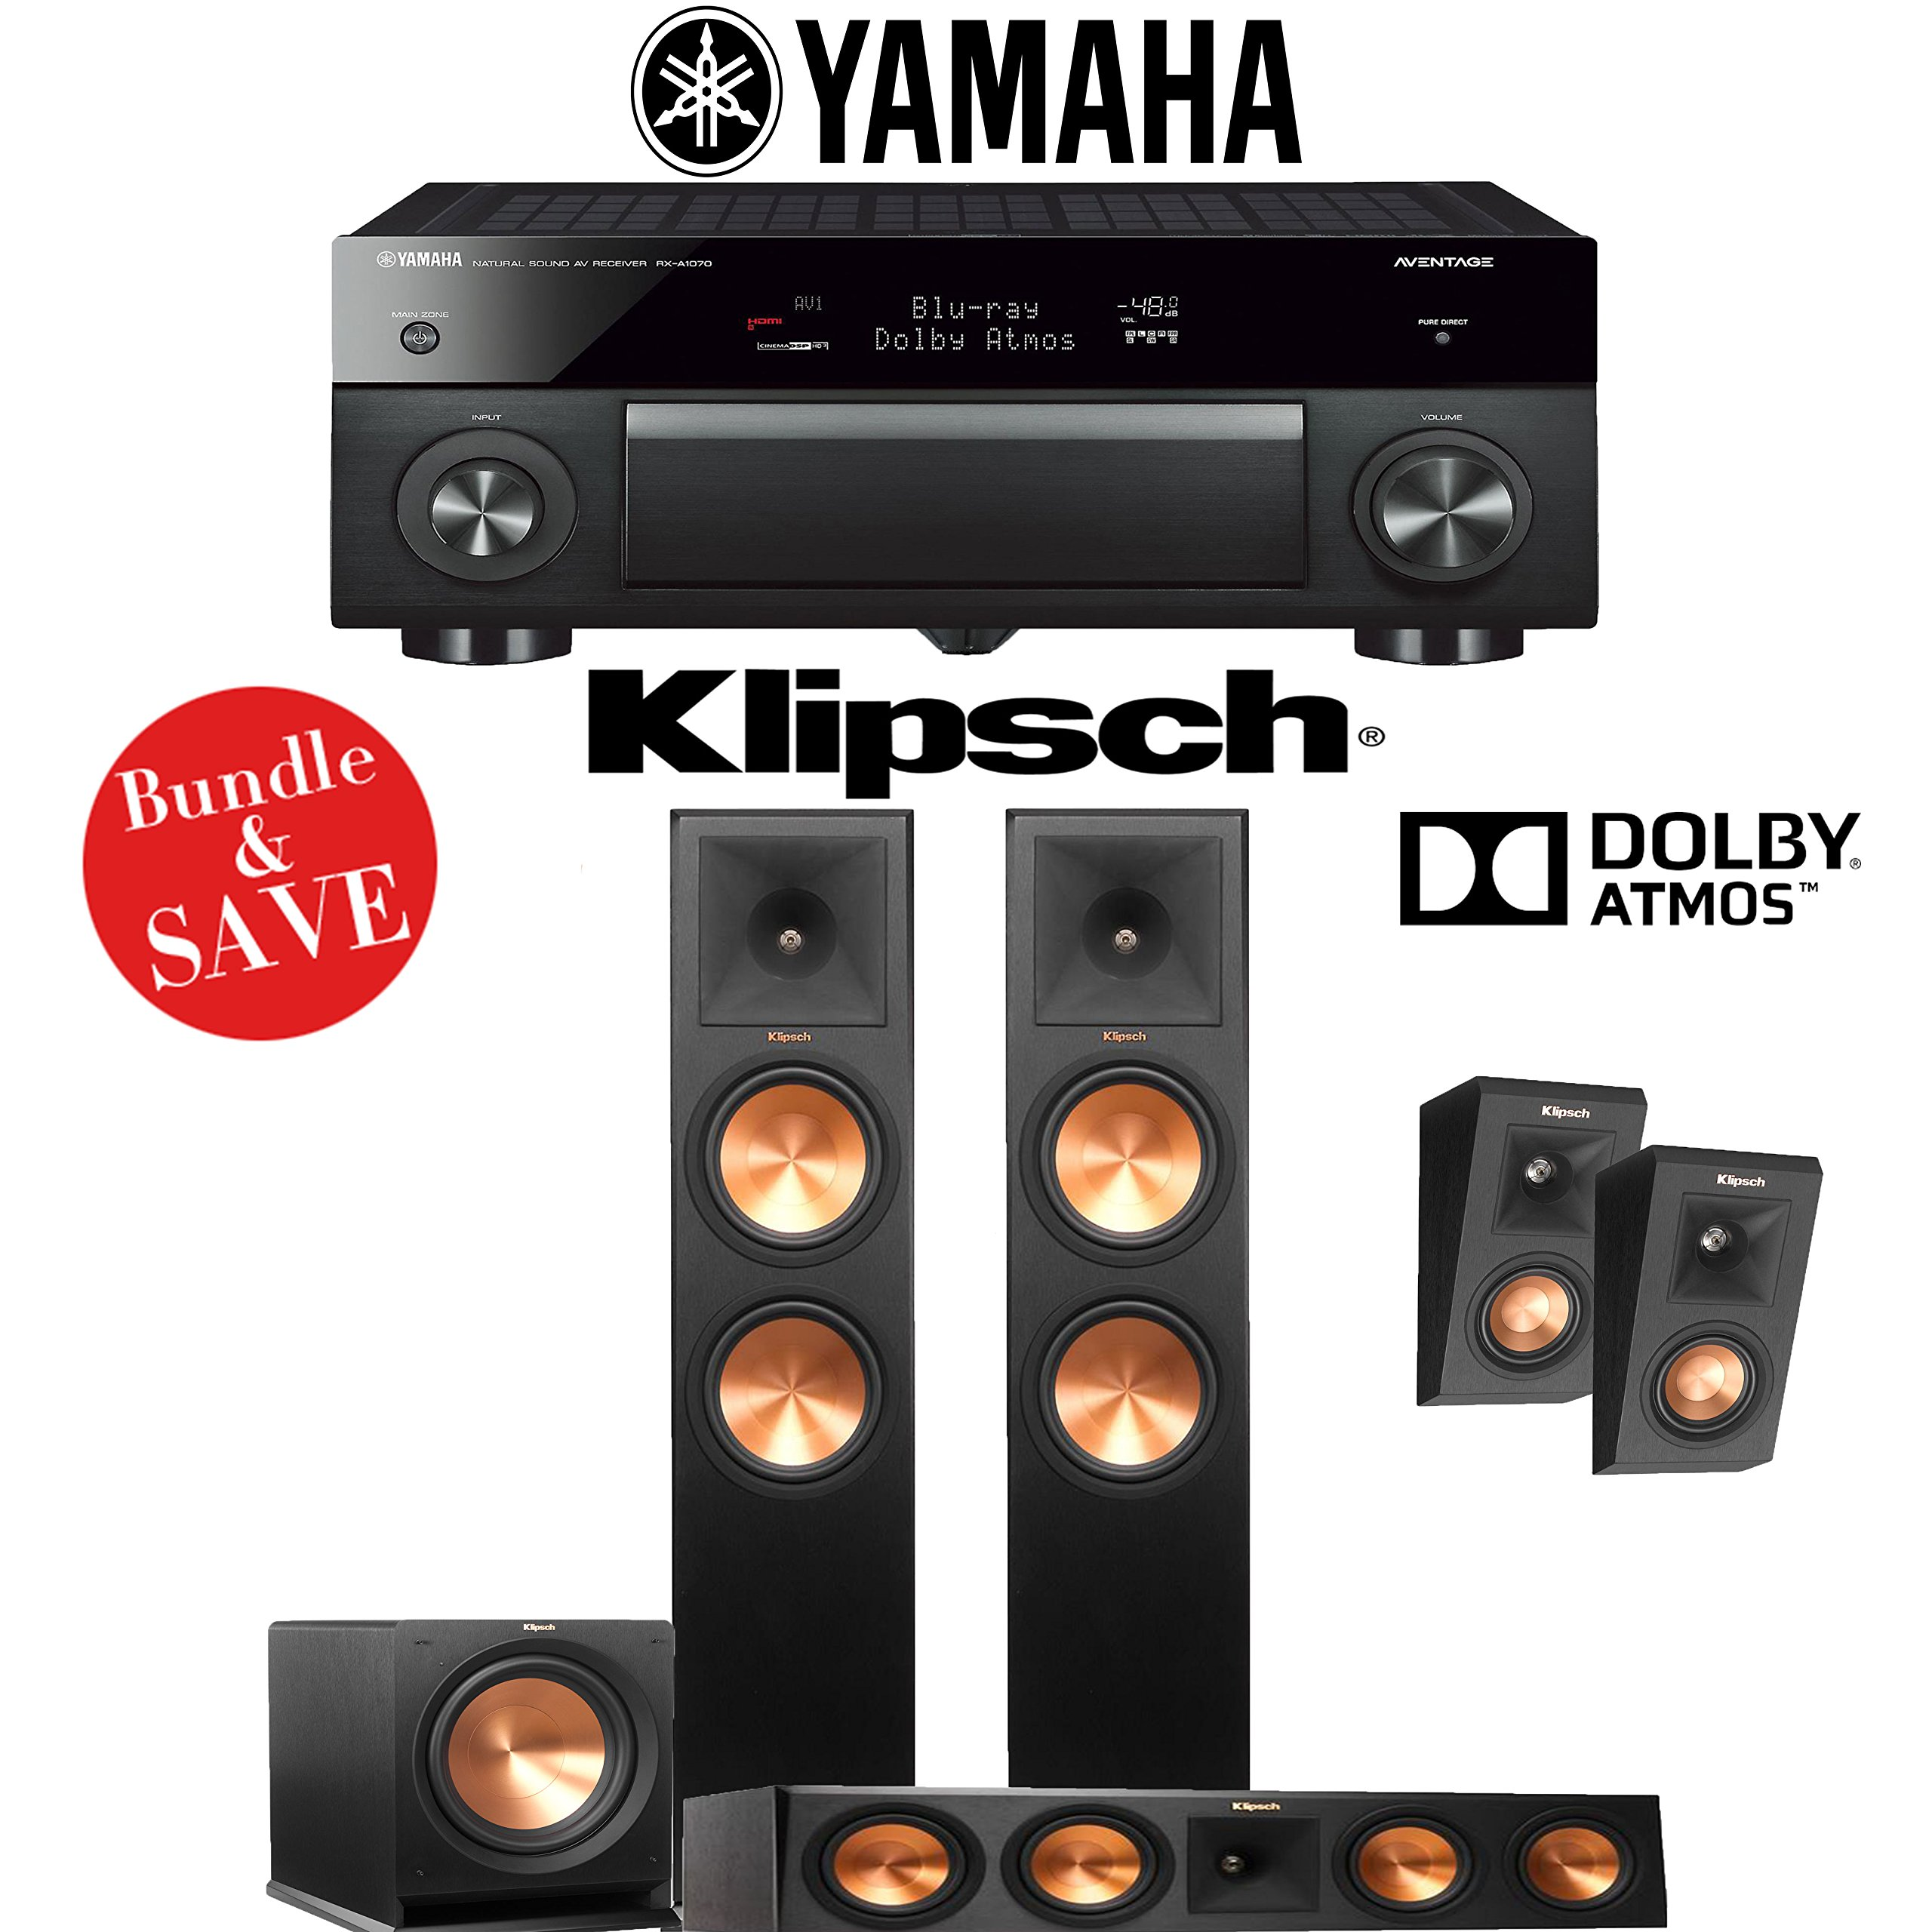 Klipsch RP-280F 3.1.2 Reference Premiere Dolby Atmos Home Theater System with Yamaha AVENTAGE RX-A1070BL 7.2-Channel Network AV Receiver by Klipsch